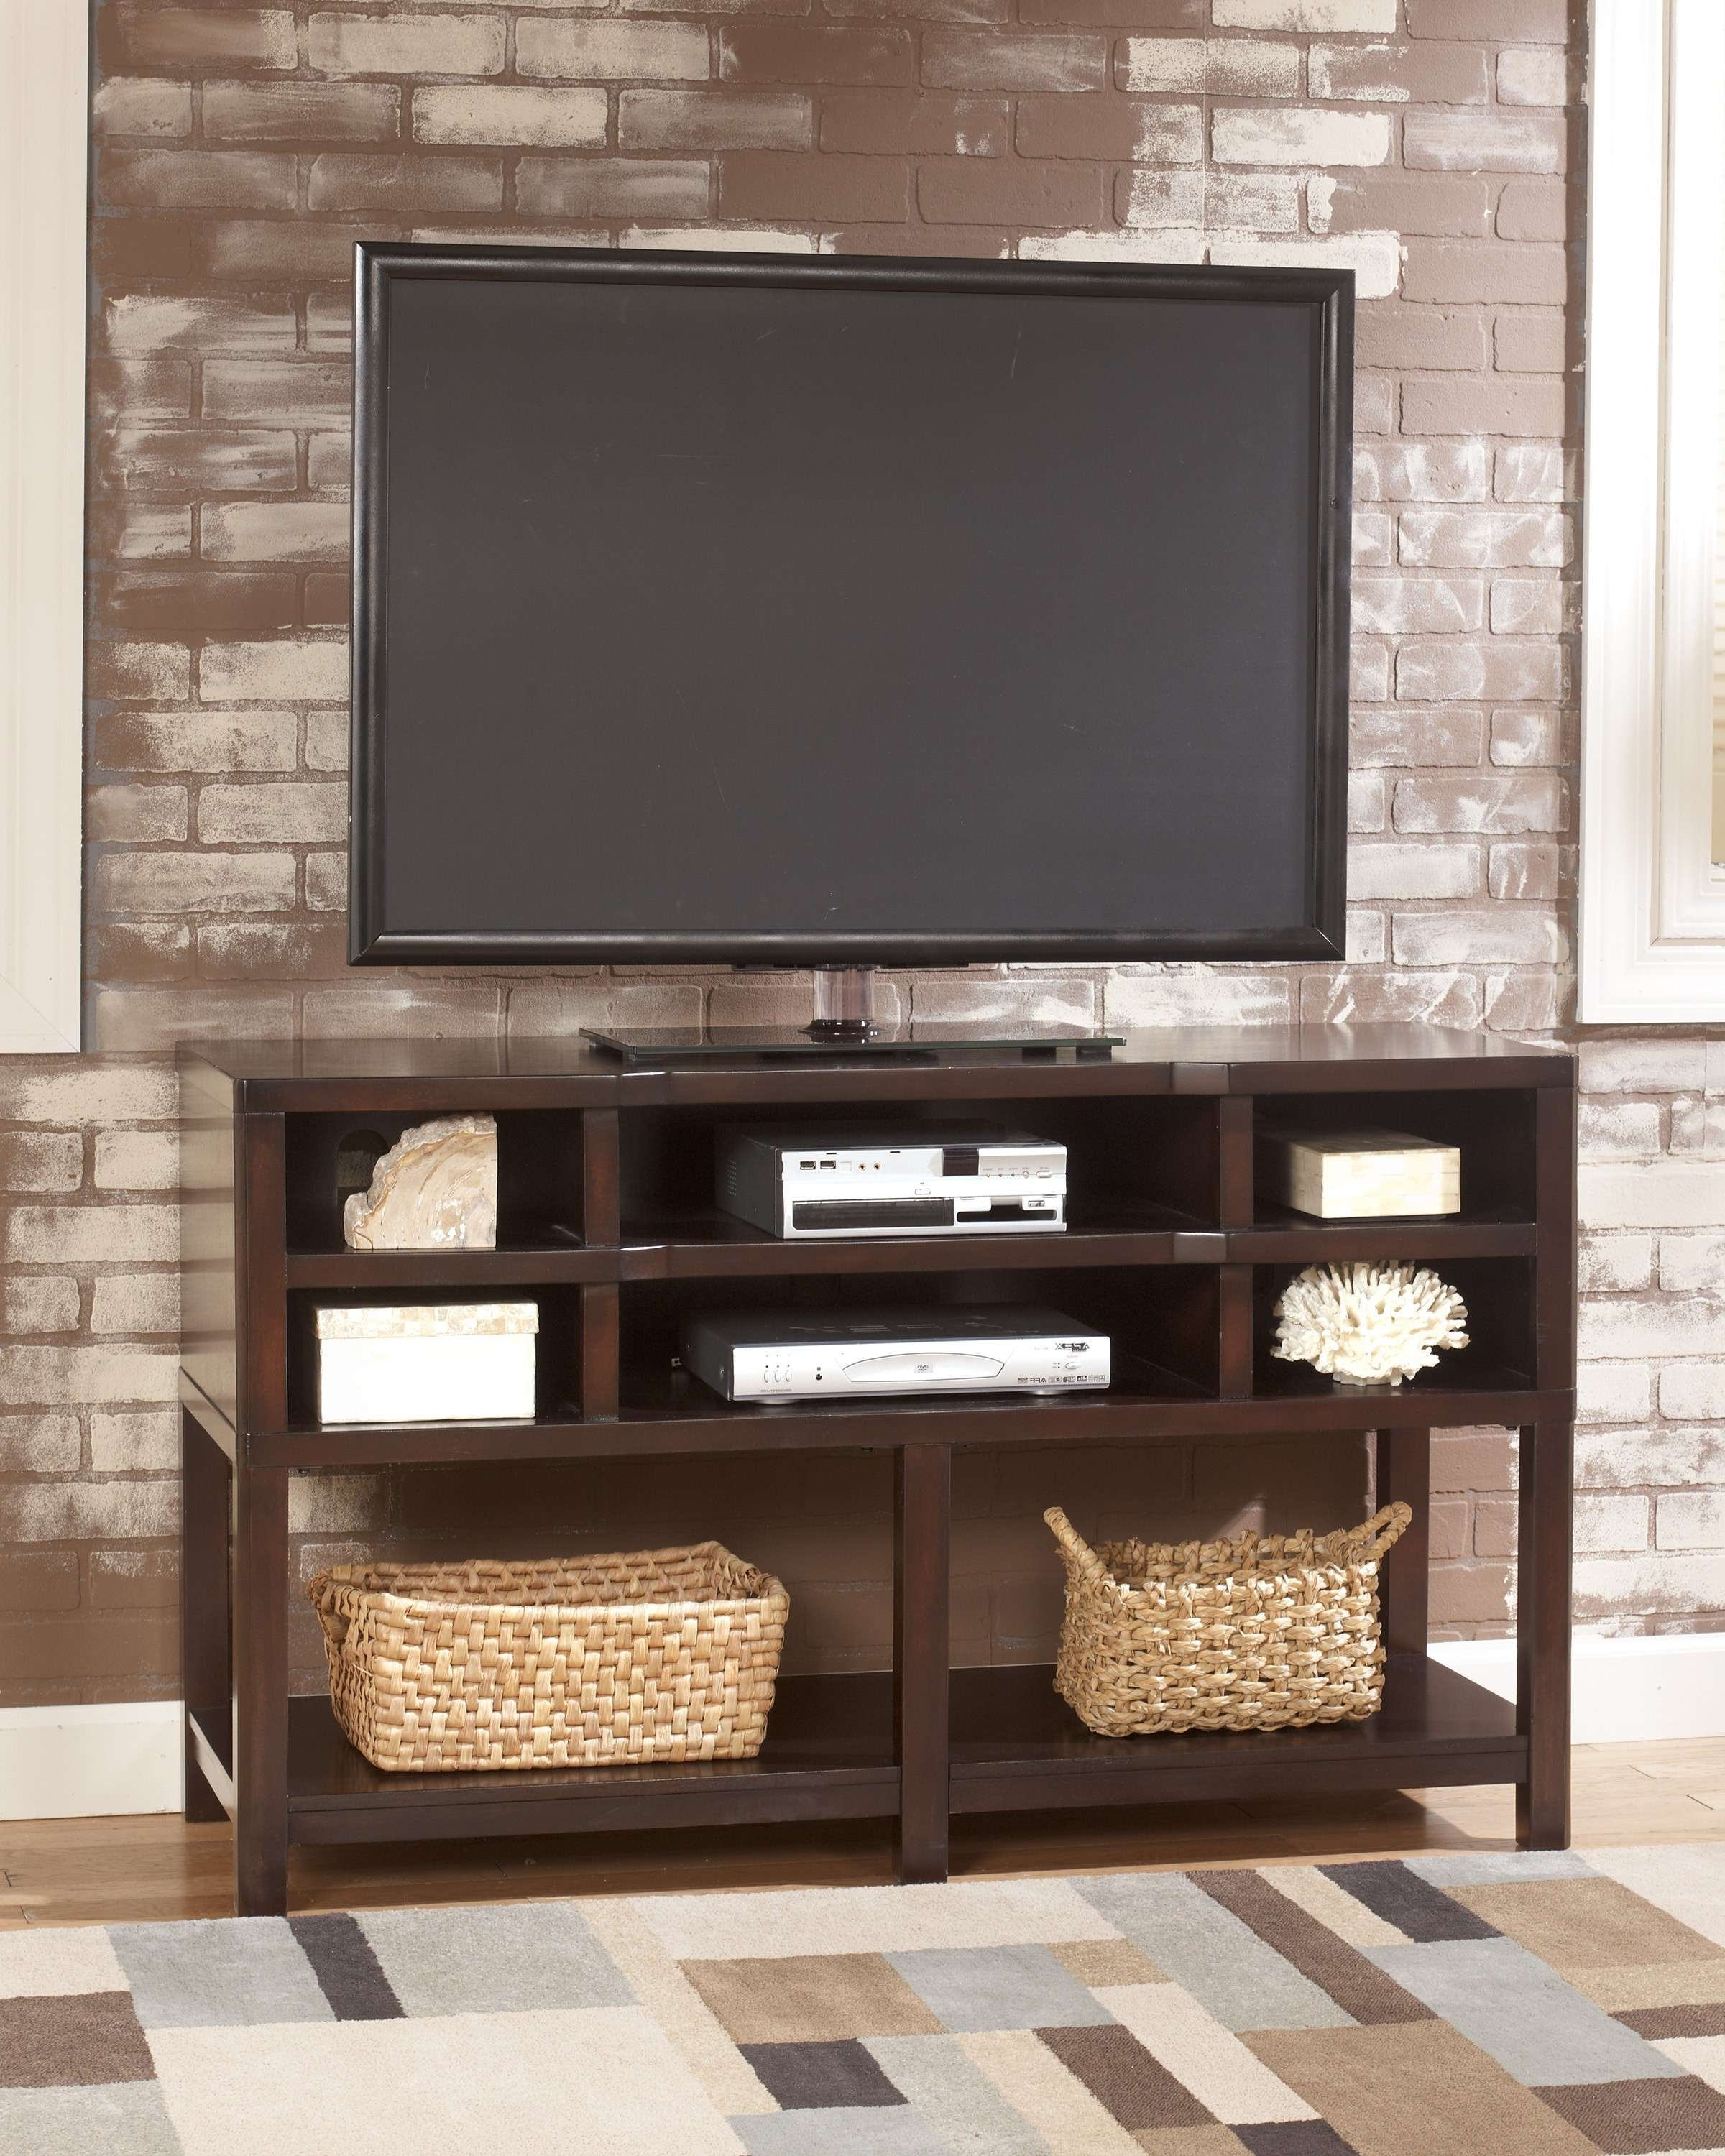 Simple Modern Oak Flat Screen Tv Stand Console Table With Inside Modern Tv Cabinets For Flat Screens (View 13 of 20)